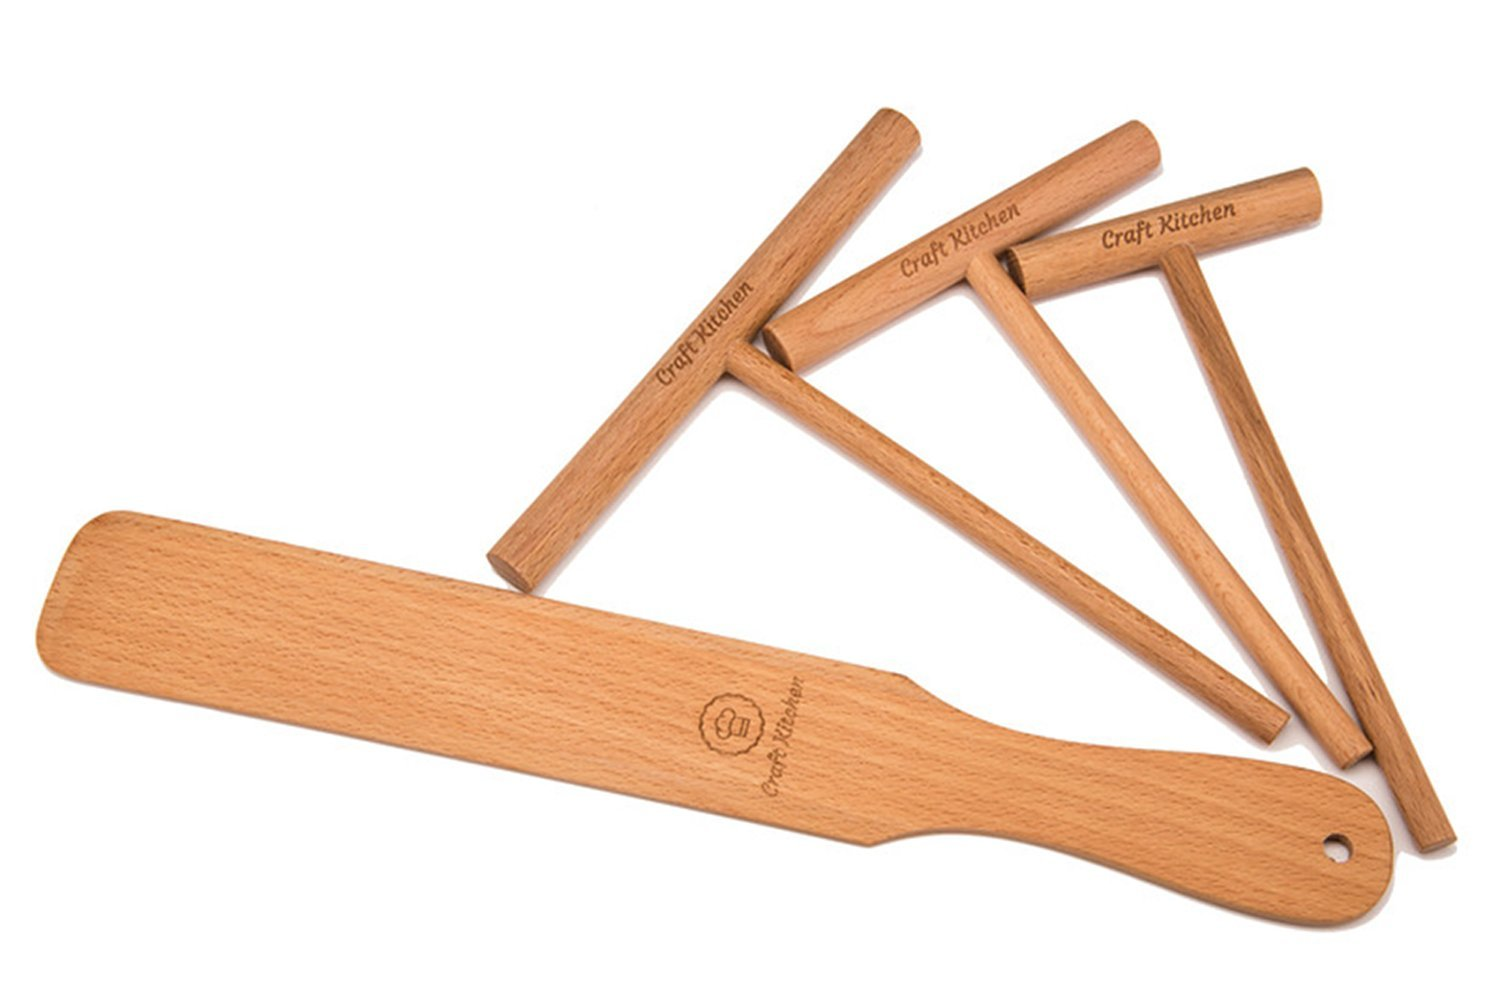 Crepe Spreader and Spatula Set - 4 Piece (Crepe Spatula 14 and 3.5, 5, 7 Crepe Spreaders) All Natural Beechwood and Finish - Comfortable Sizes Will Fit Any Crepe Pan - Made by Craft Kitchen 5 Profoco